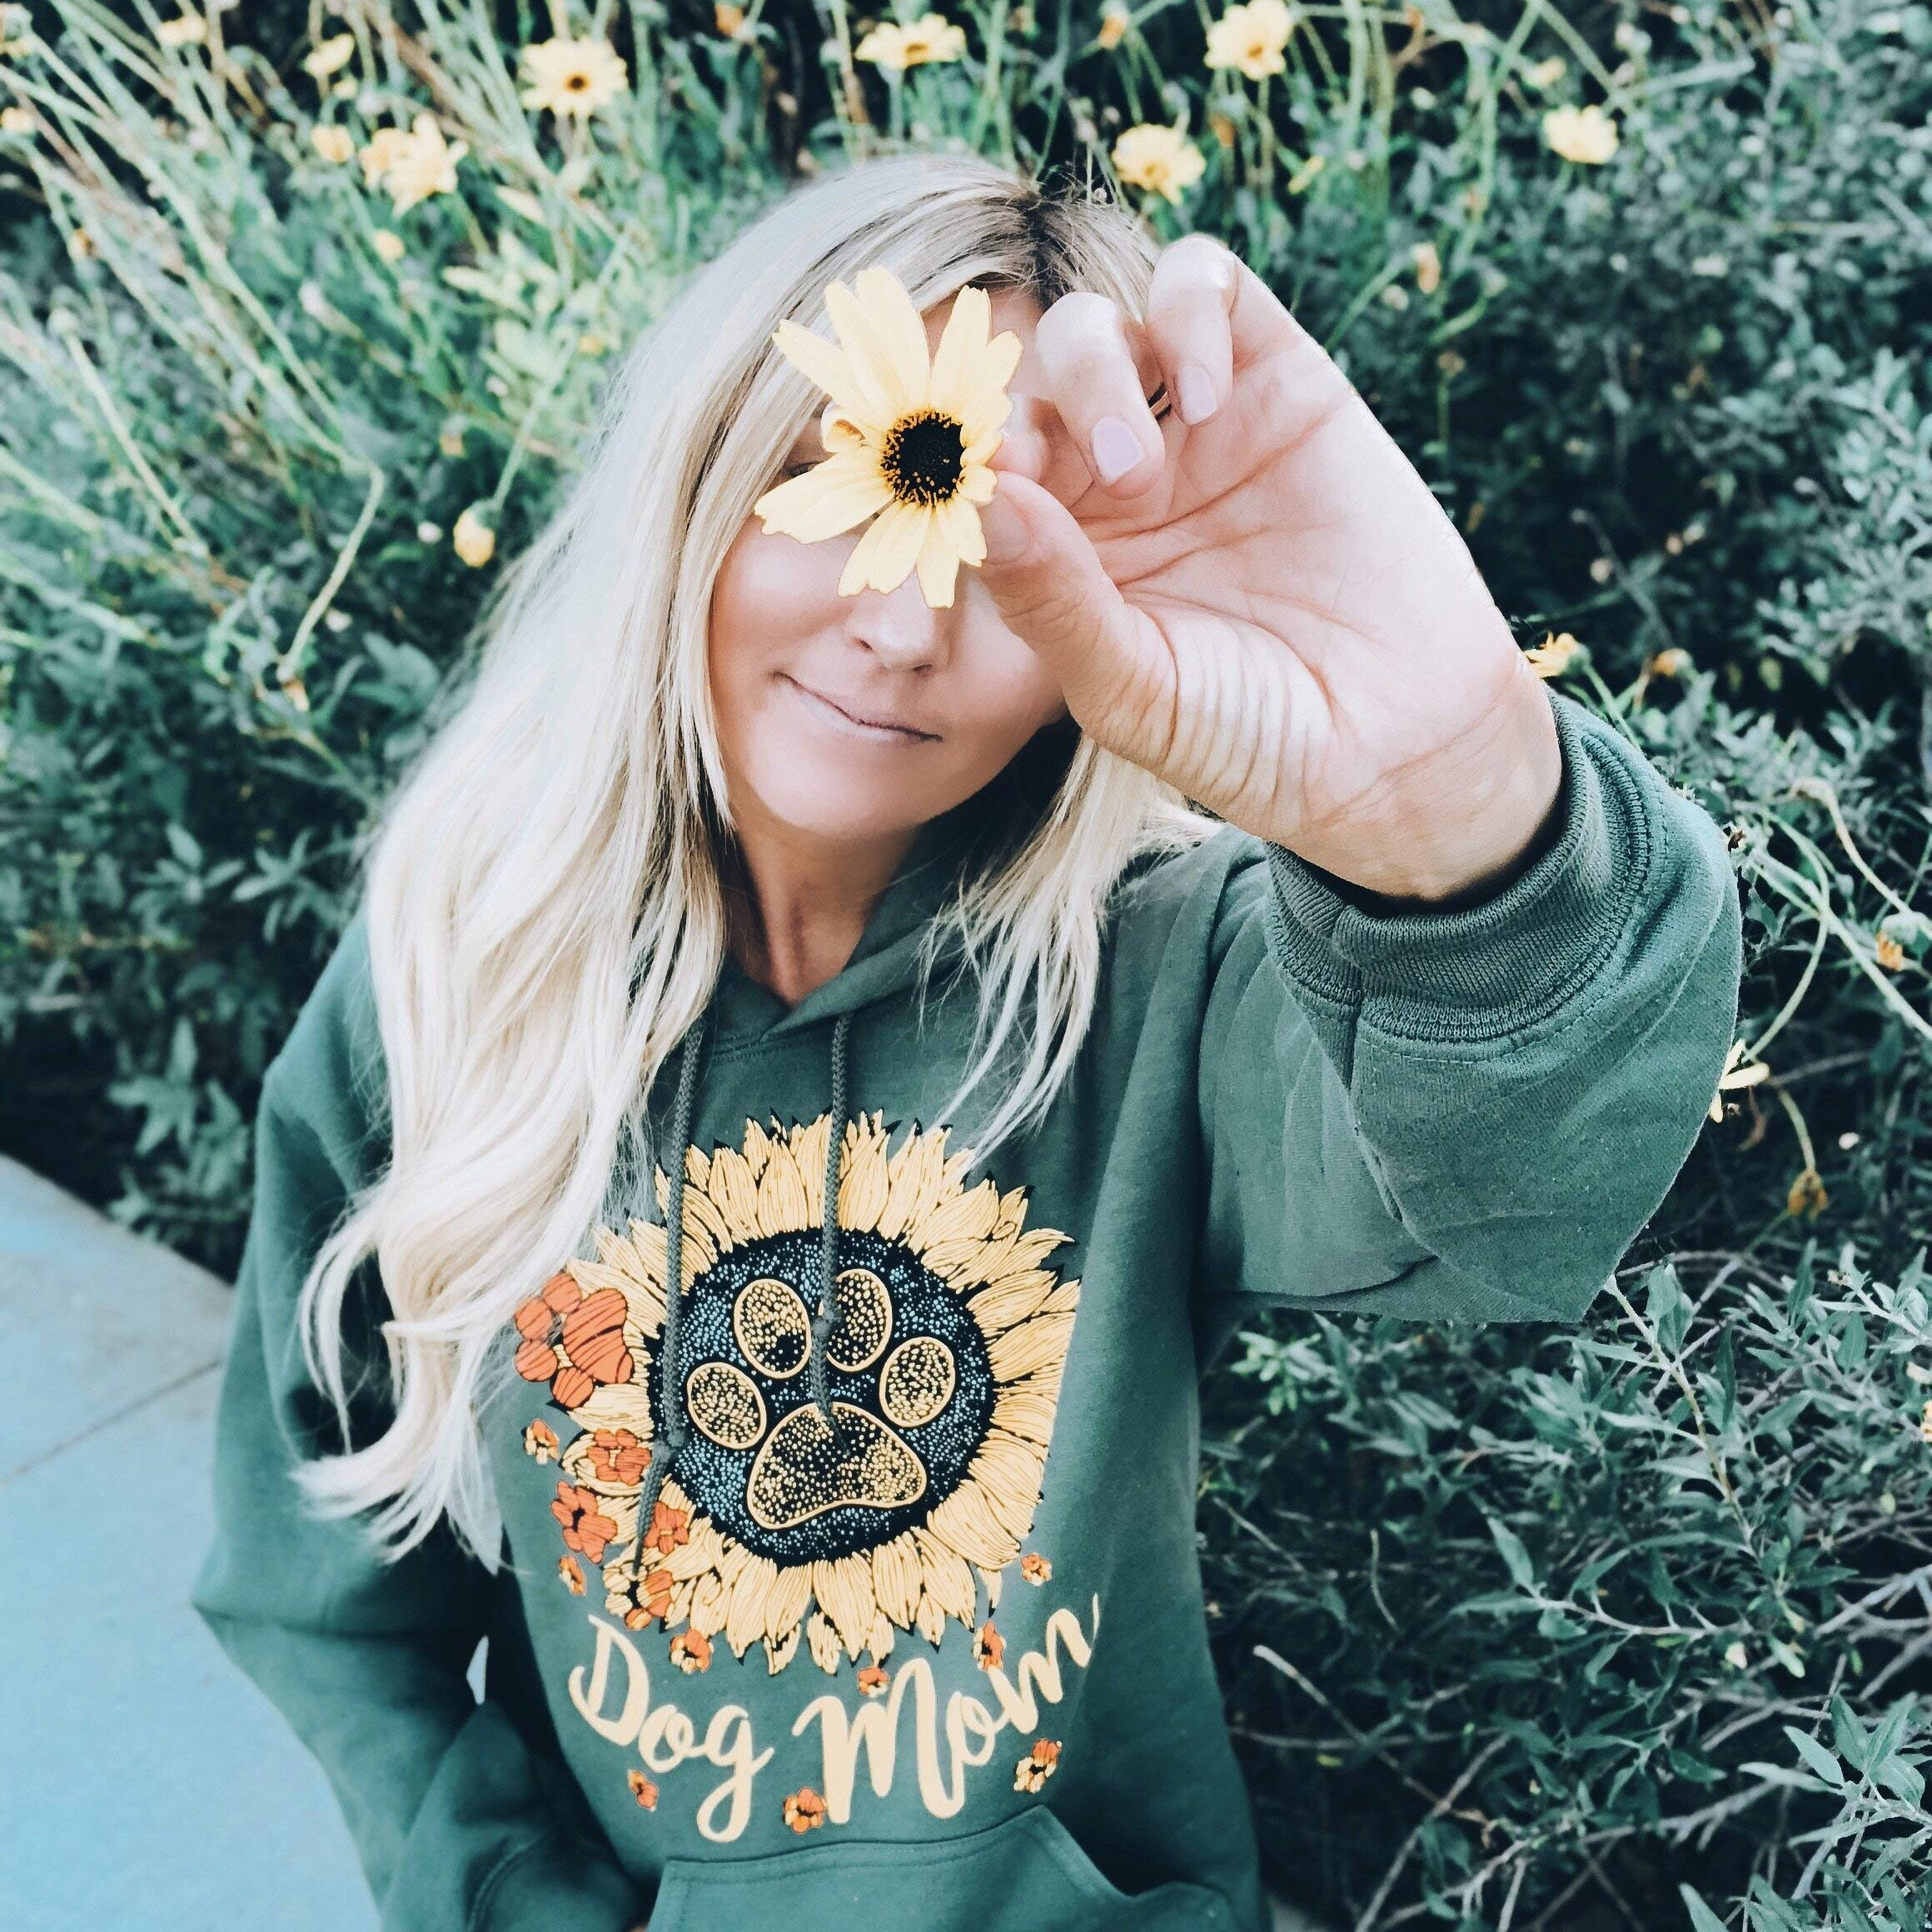 PAWZ Hoodie - Olive Sunflower Dog Mom Print - Every Item Sold Saves Homeless Dogs by PAWZ